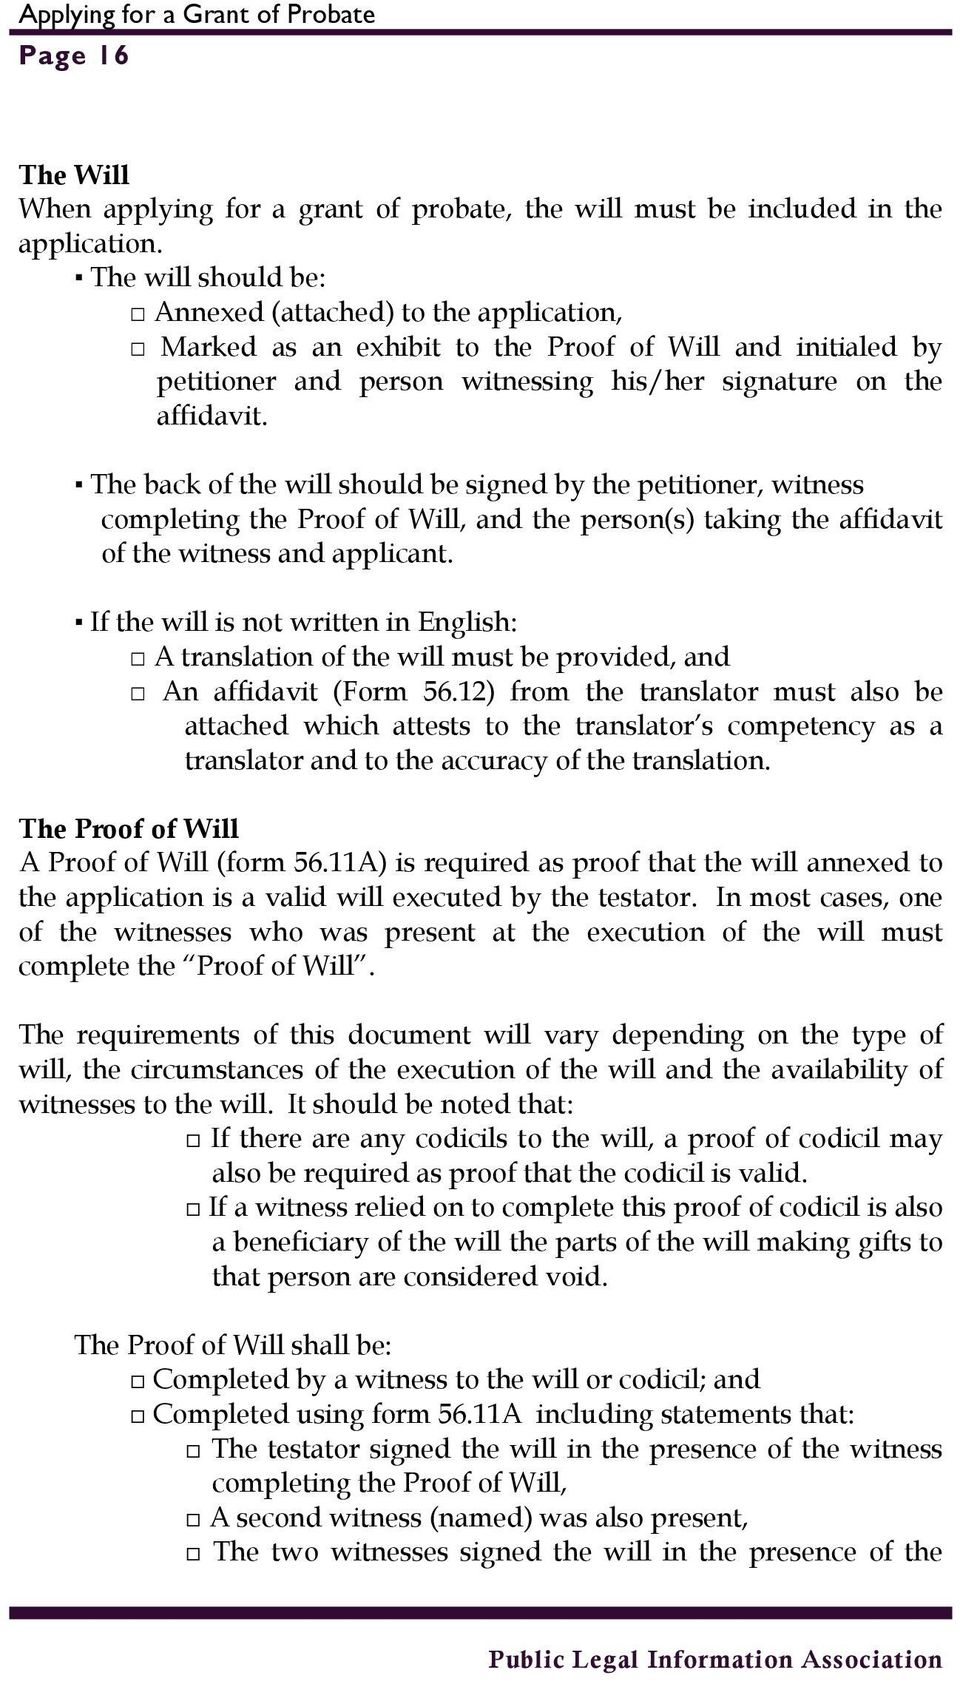 The back of the will should be signed by the petitioner, witness completing the Proof of Will, and the person(s) taking the affidavit of the witness and applicant.